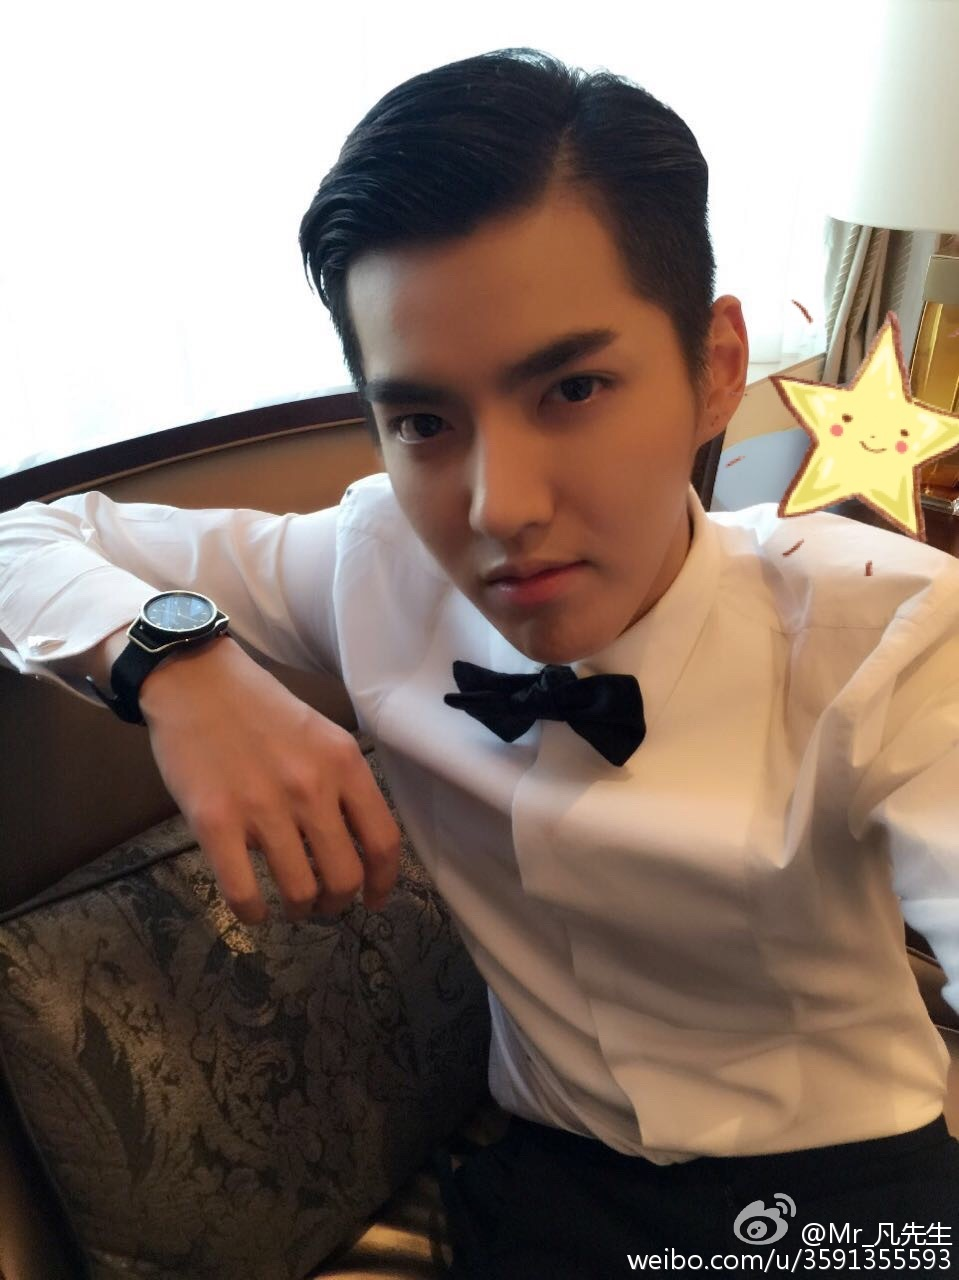 7 Ways That Kris (Wu Yi Fan) Is Taking Over the World